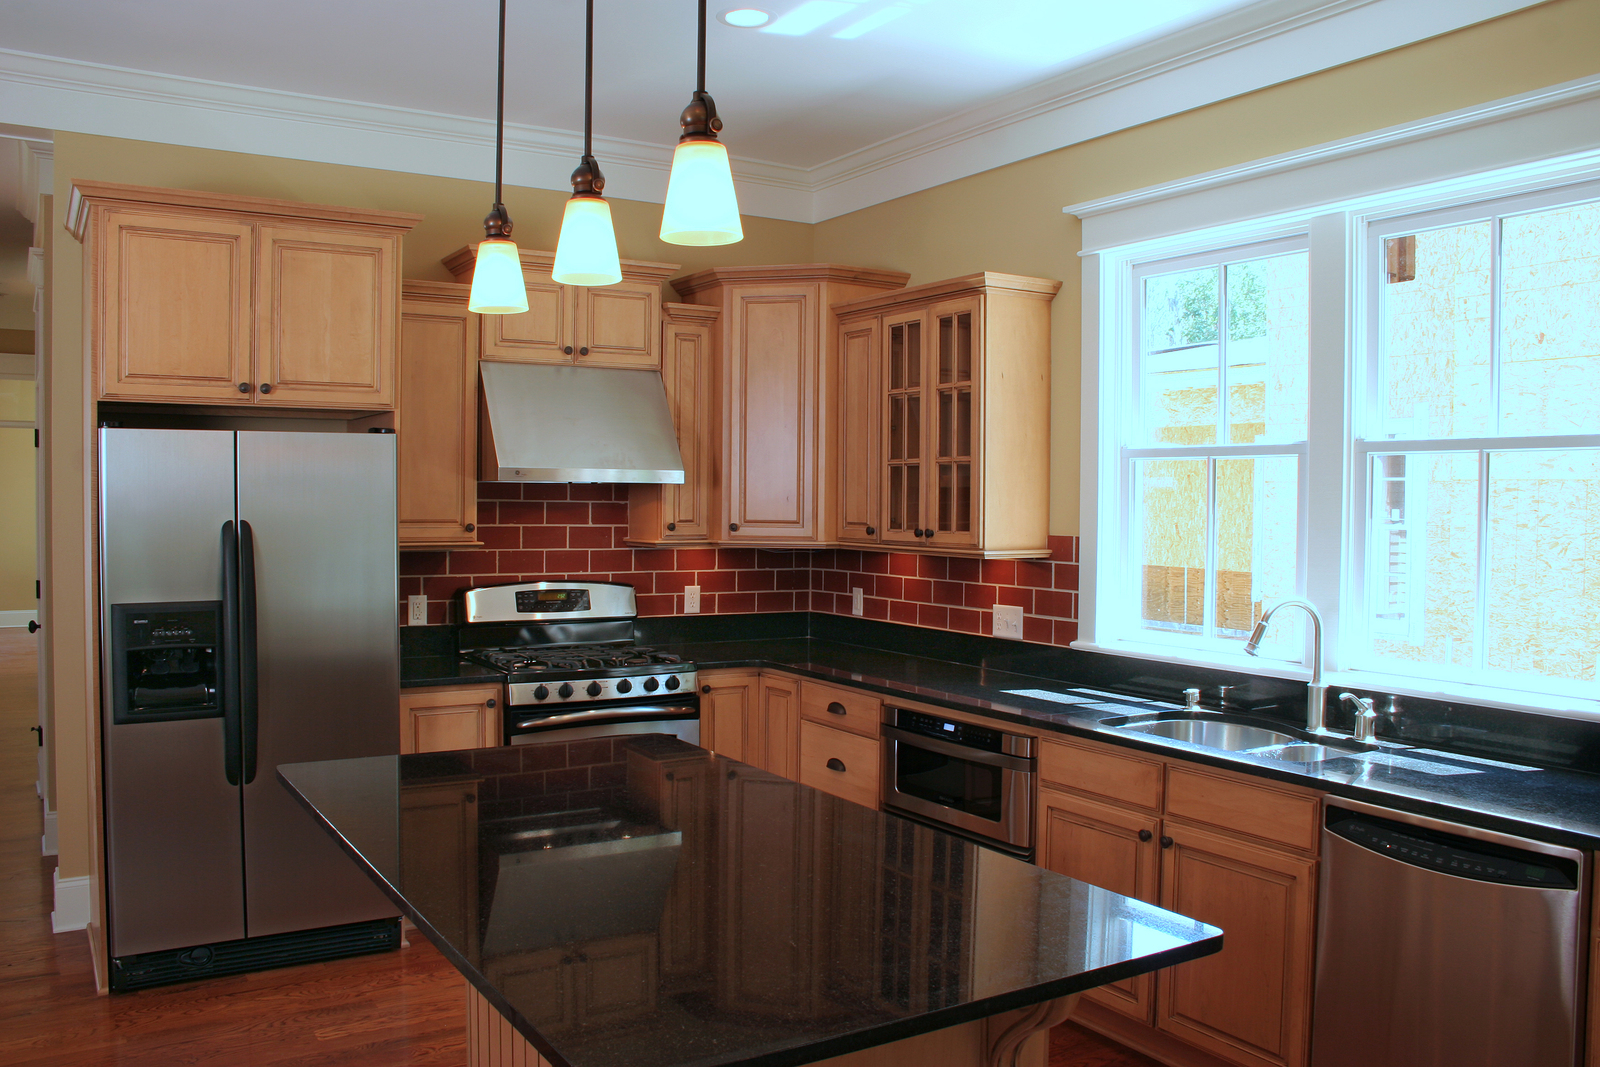 new kitchen remodel with appliances